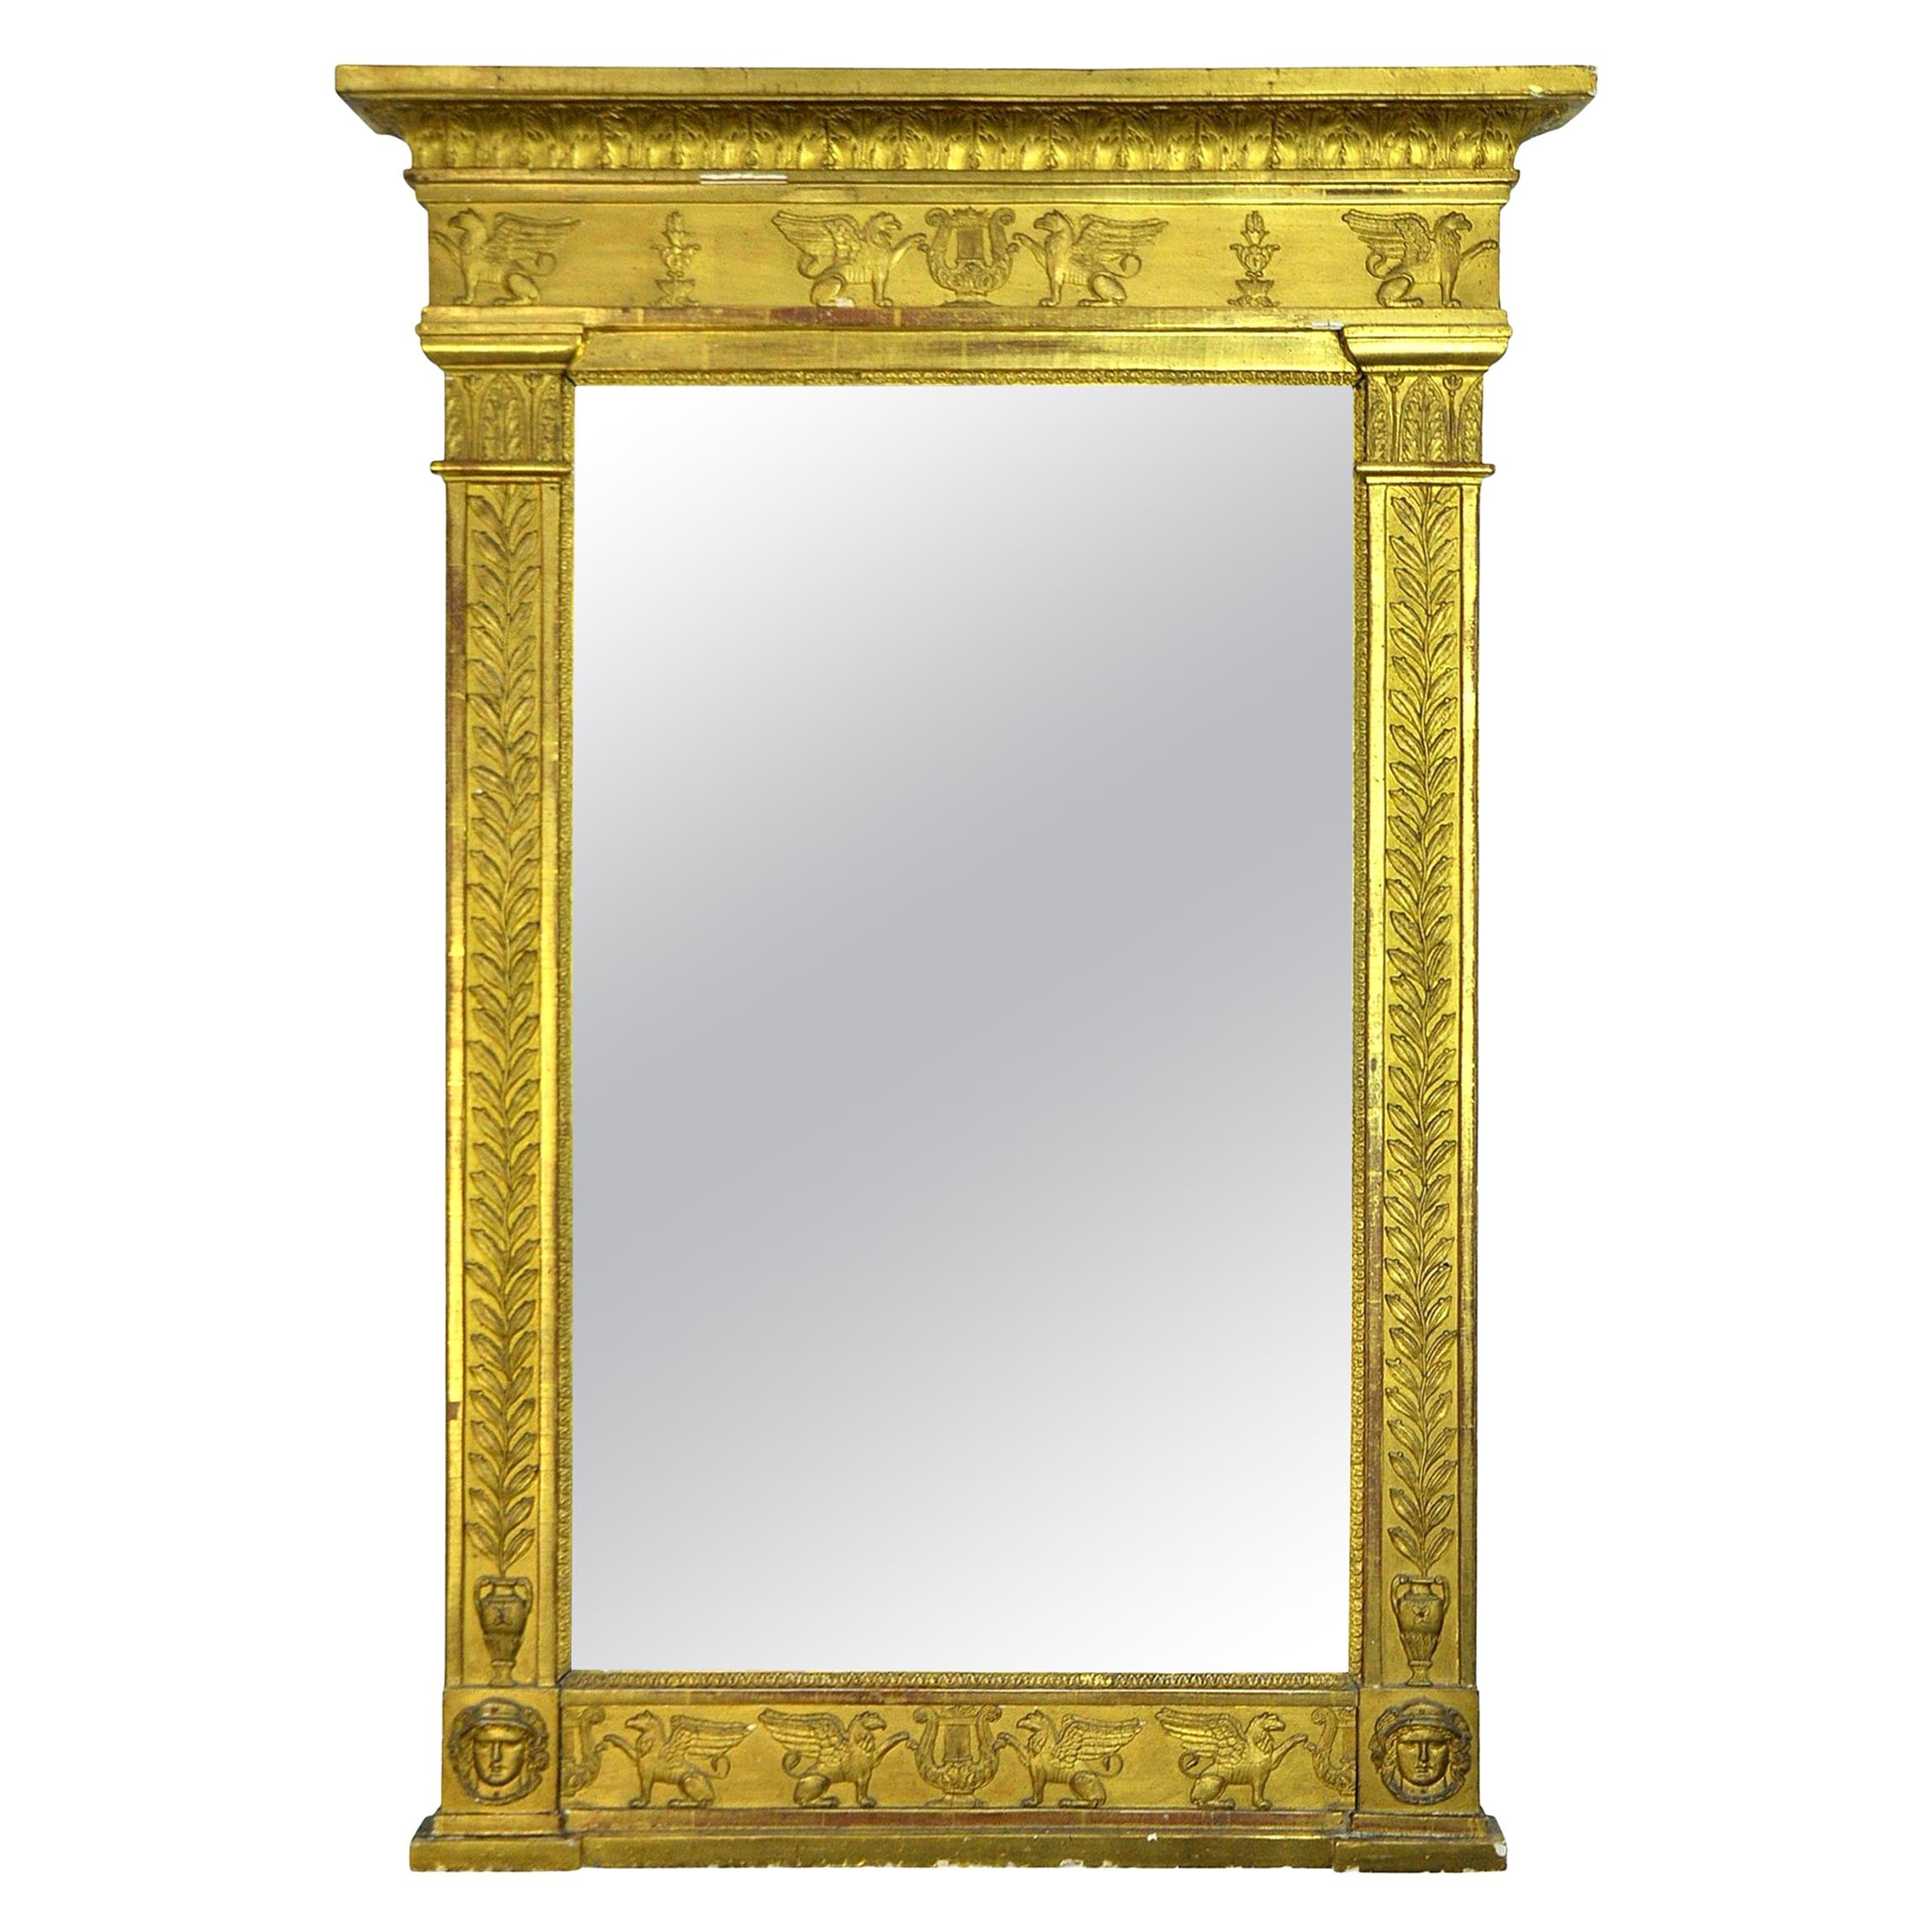 French Neoclassical Gilt Mirror, Early 19th Century